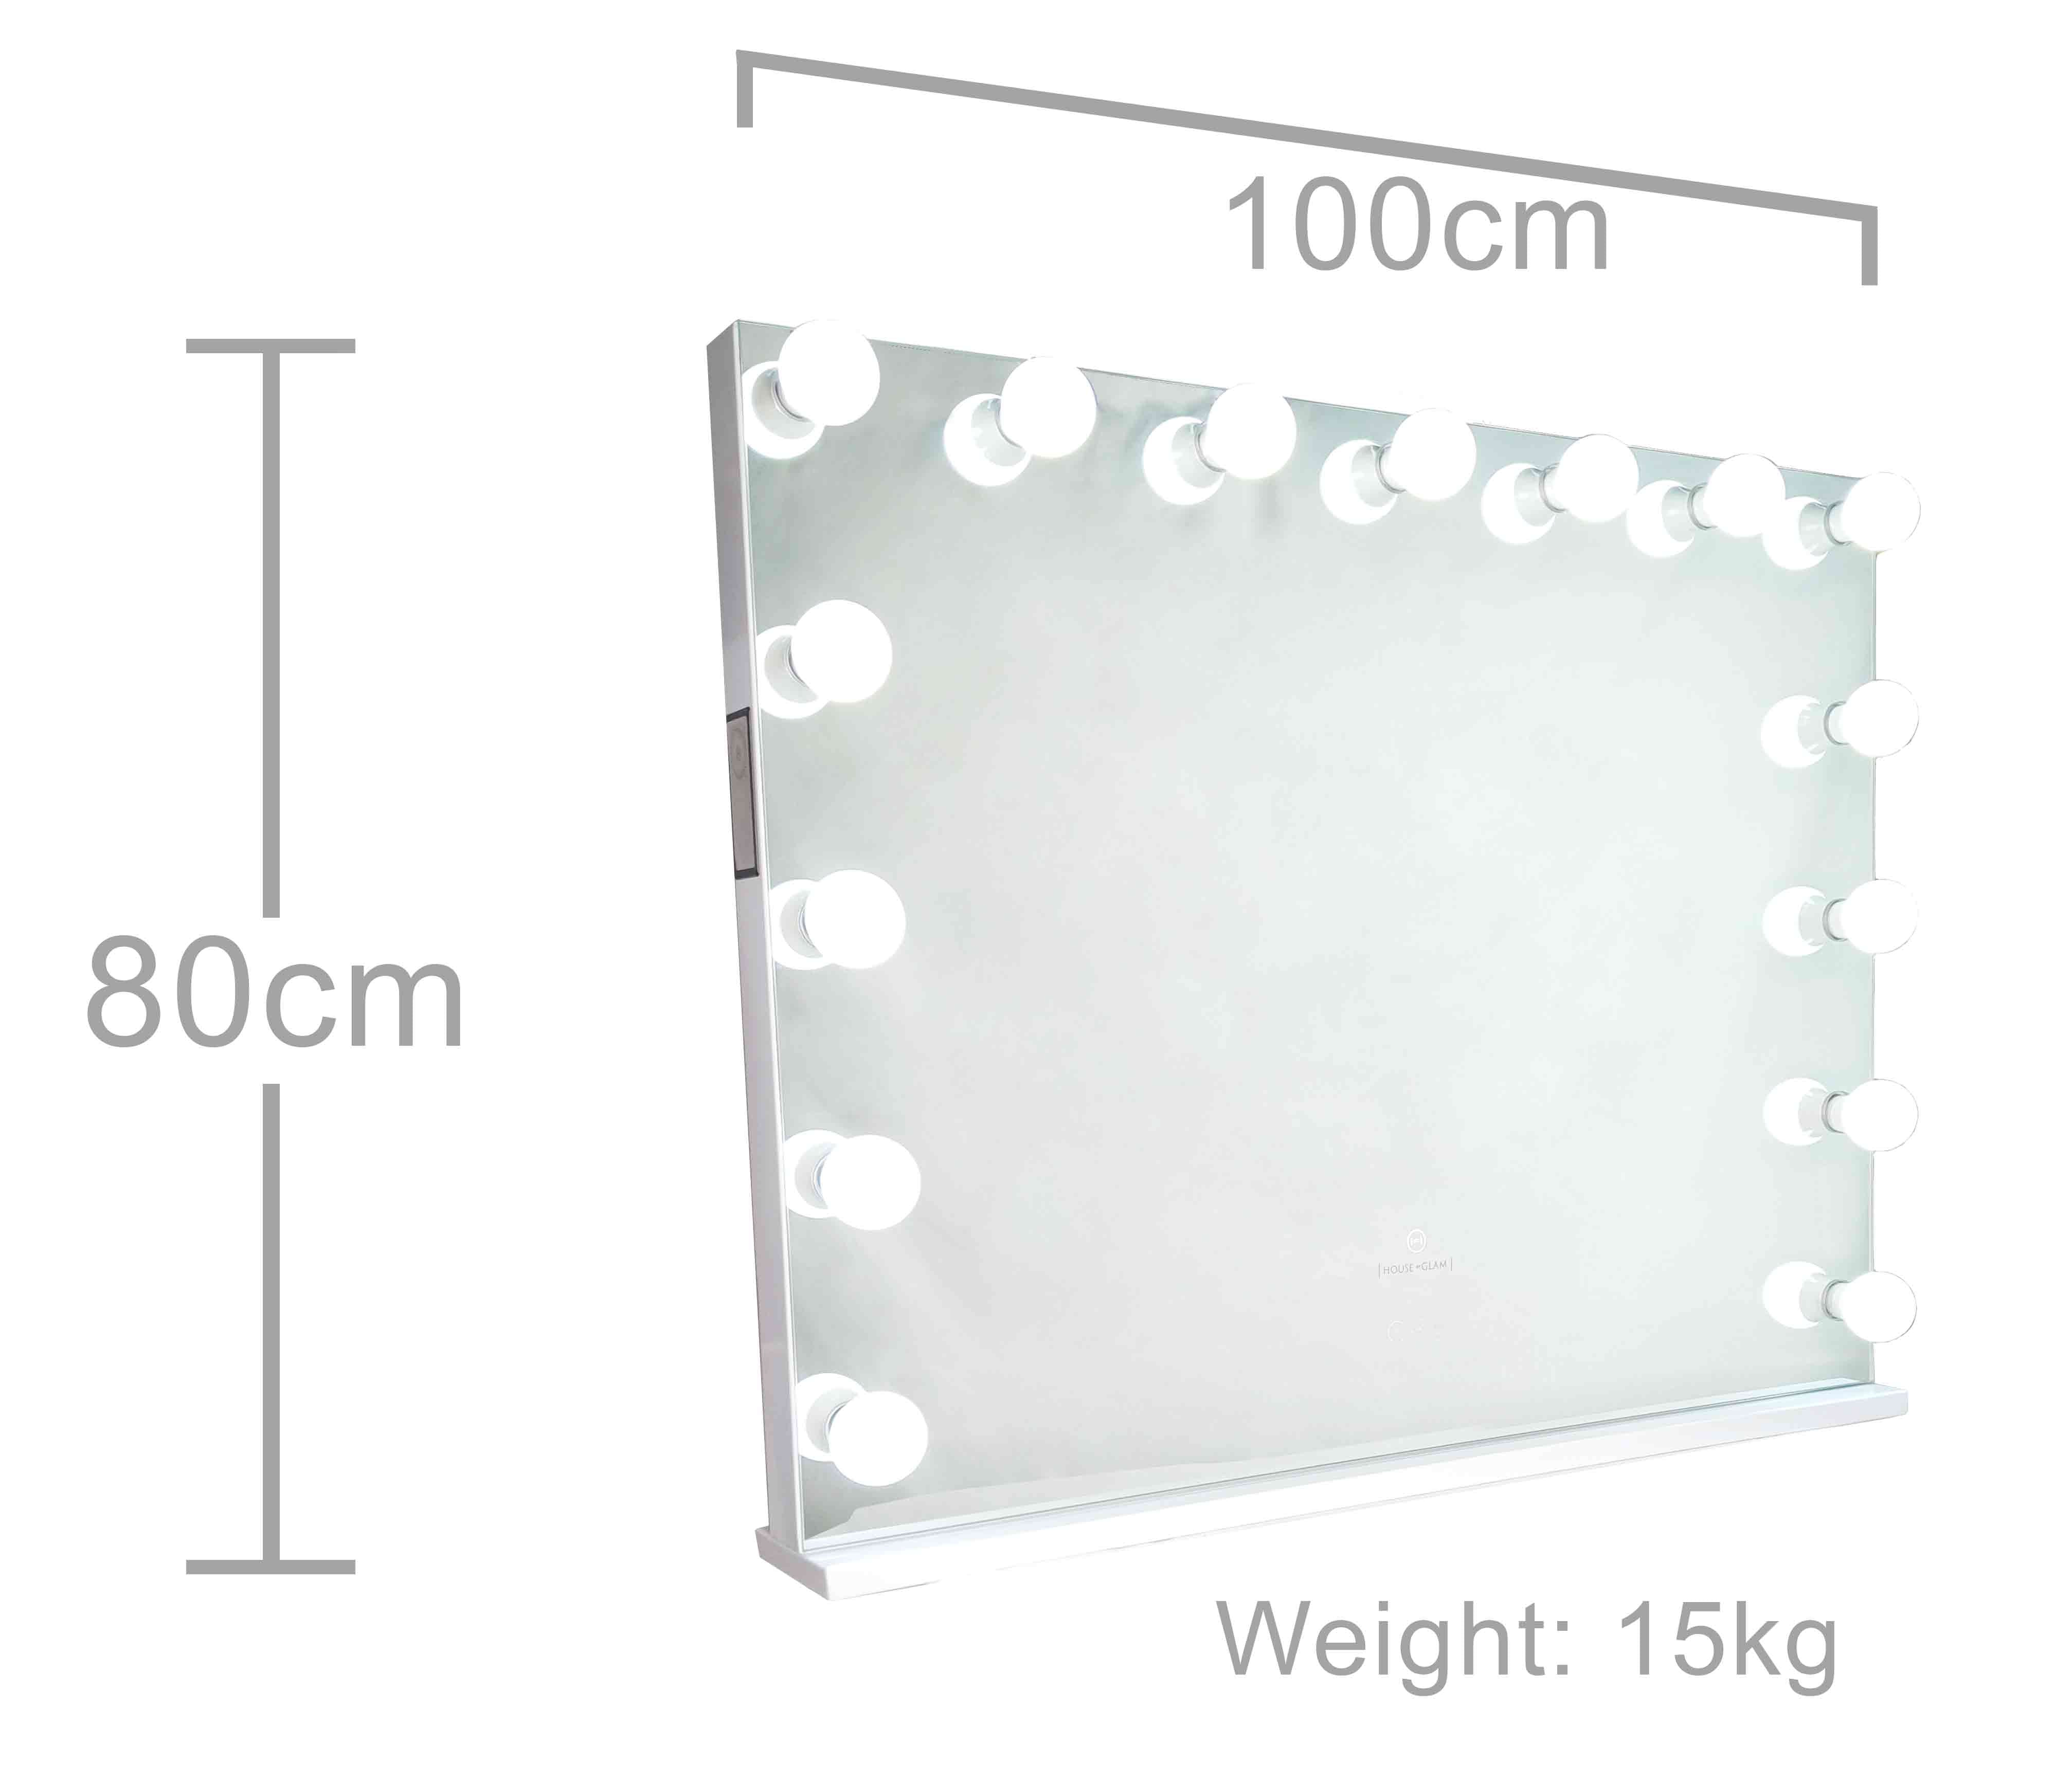 The Vogue Vanity Dimensions